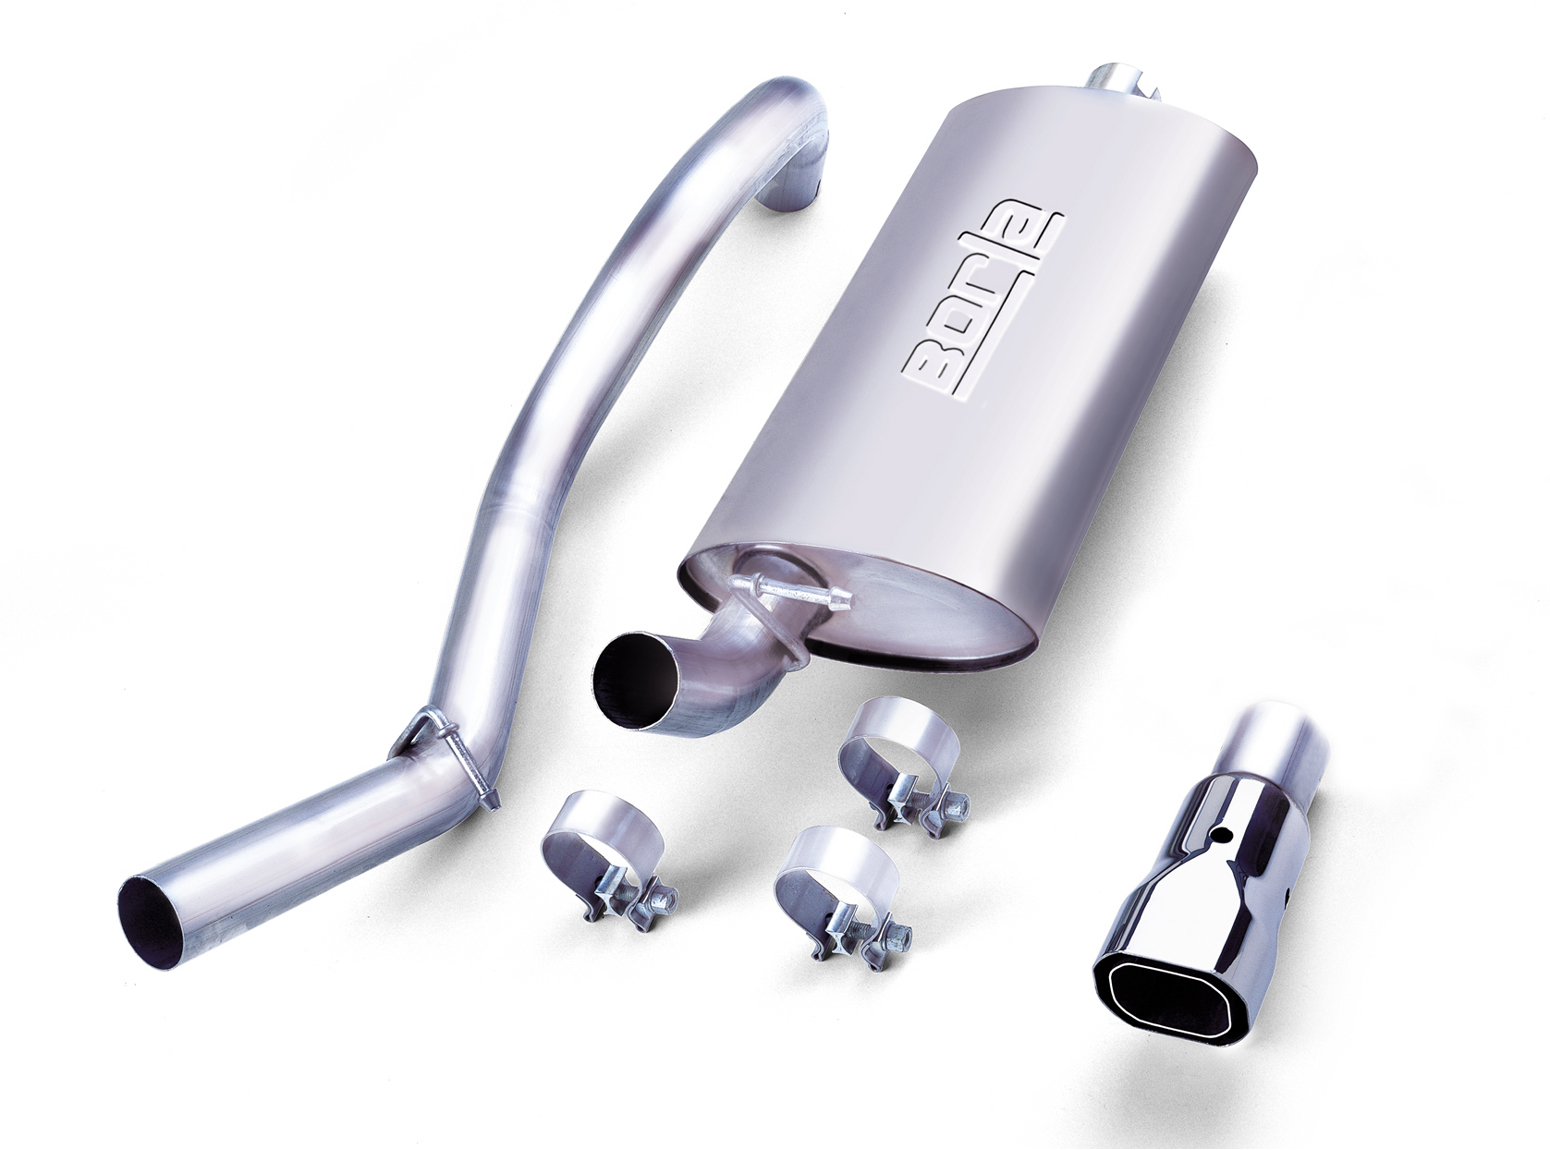 "Jeep Wrangler 2.5l 4cyl/4.0l 6cyl 1997-1999 Borla 2.25"" Cat-Back Exhaust System - Single Square Angle-Cut Phantom Tips"